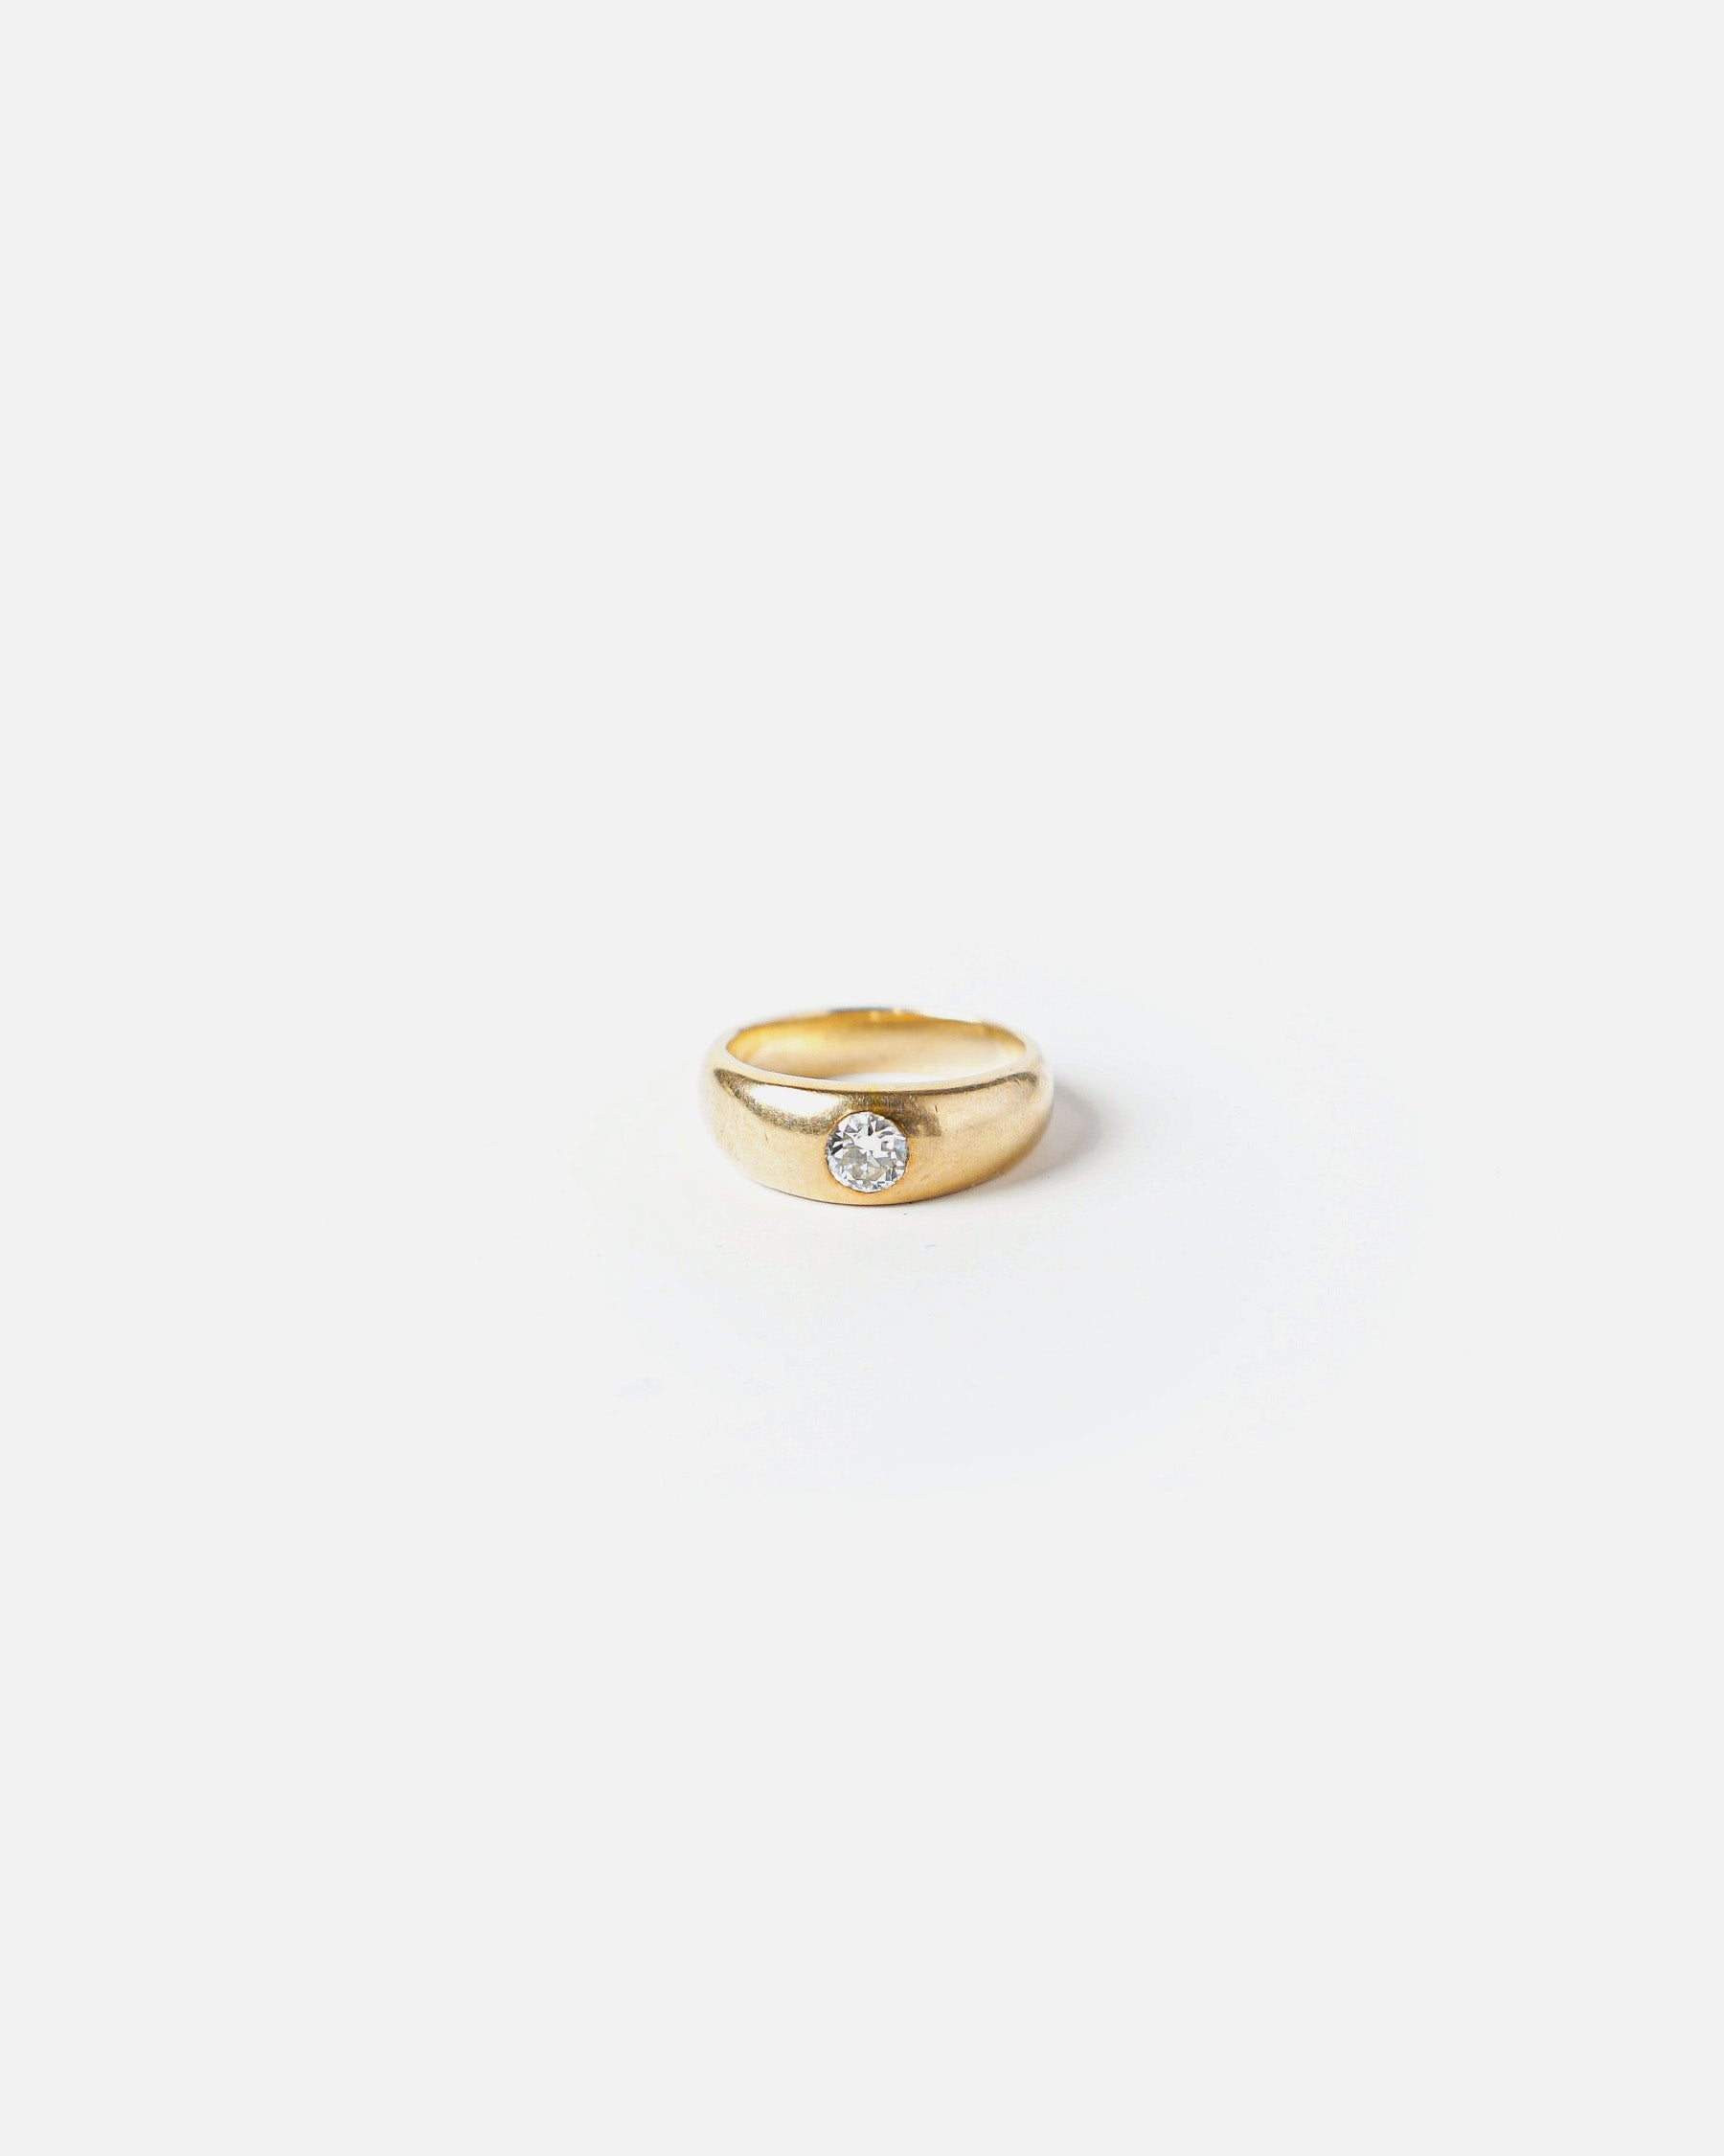 14K Yellow Gold W/ 40kt. Diamond Engagement Ring